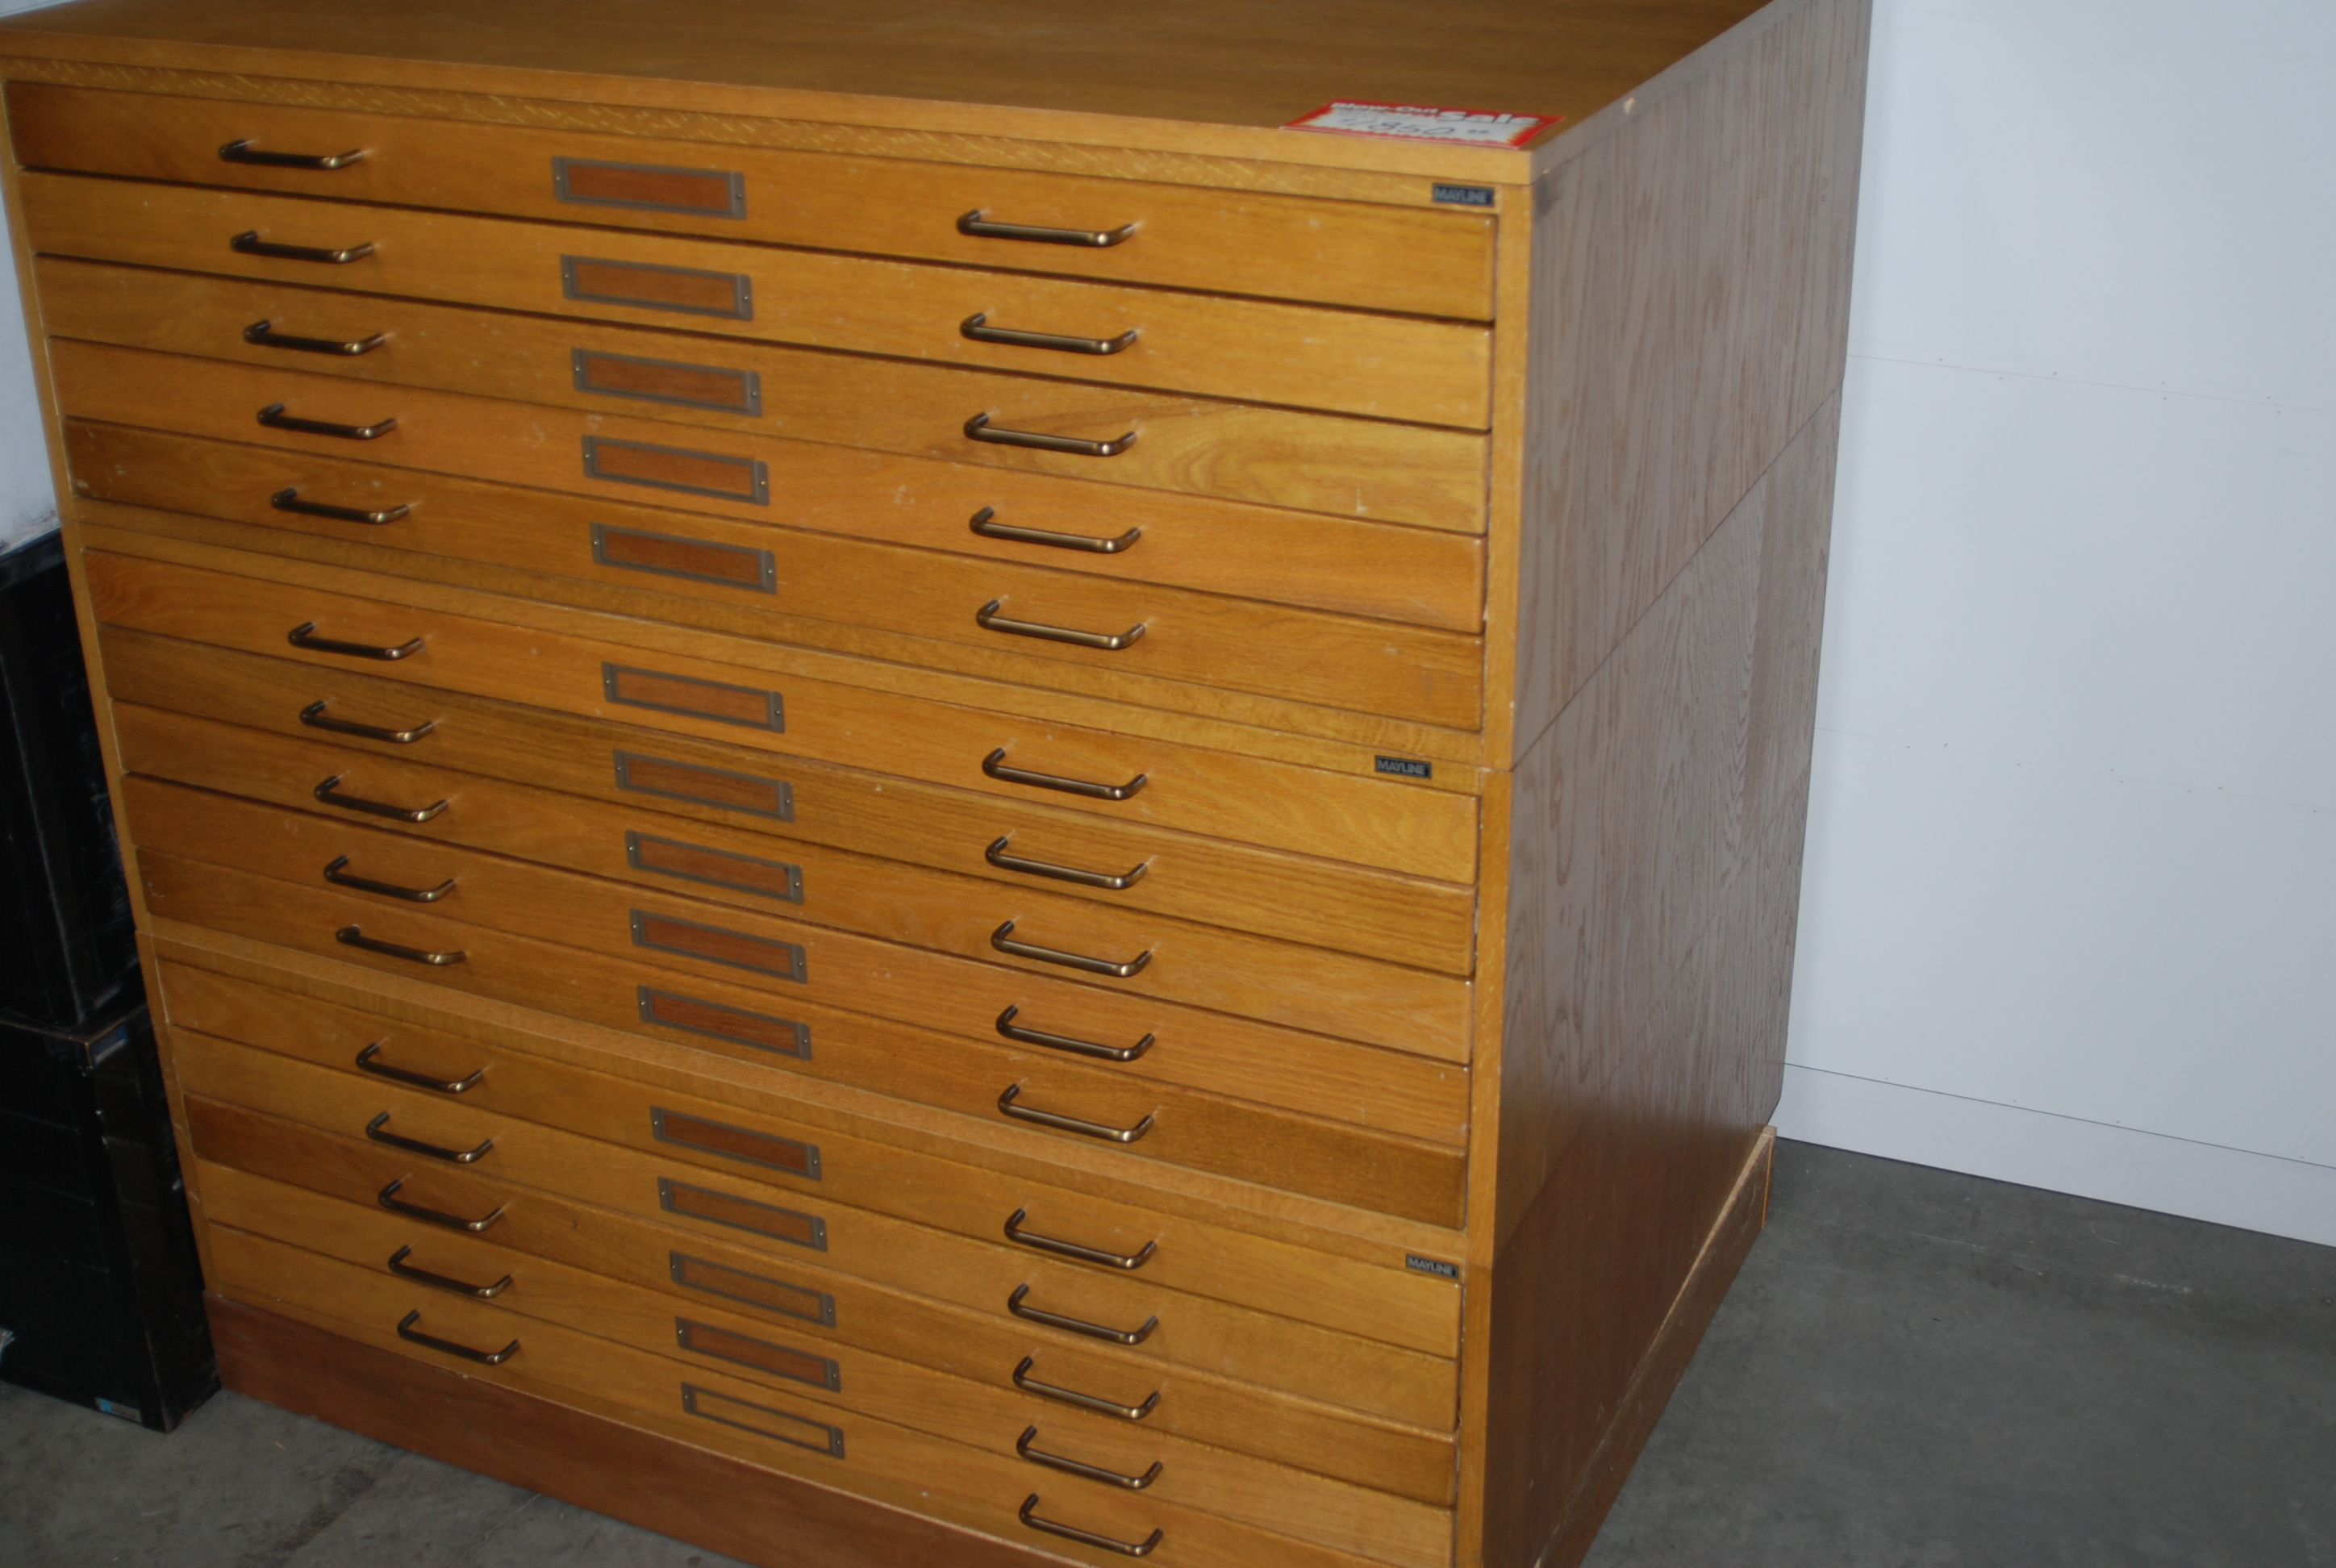 Used Mayline 5 Drawer Sold Wood Flat Files Includes 3 1 Cap And Base Holds Up To 30 X 42 Drawings Total List Price For This New